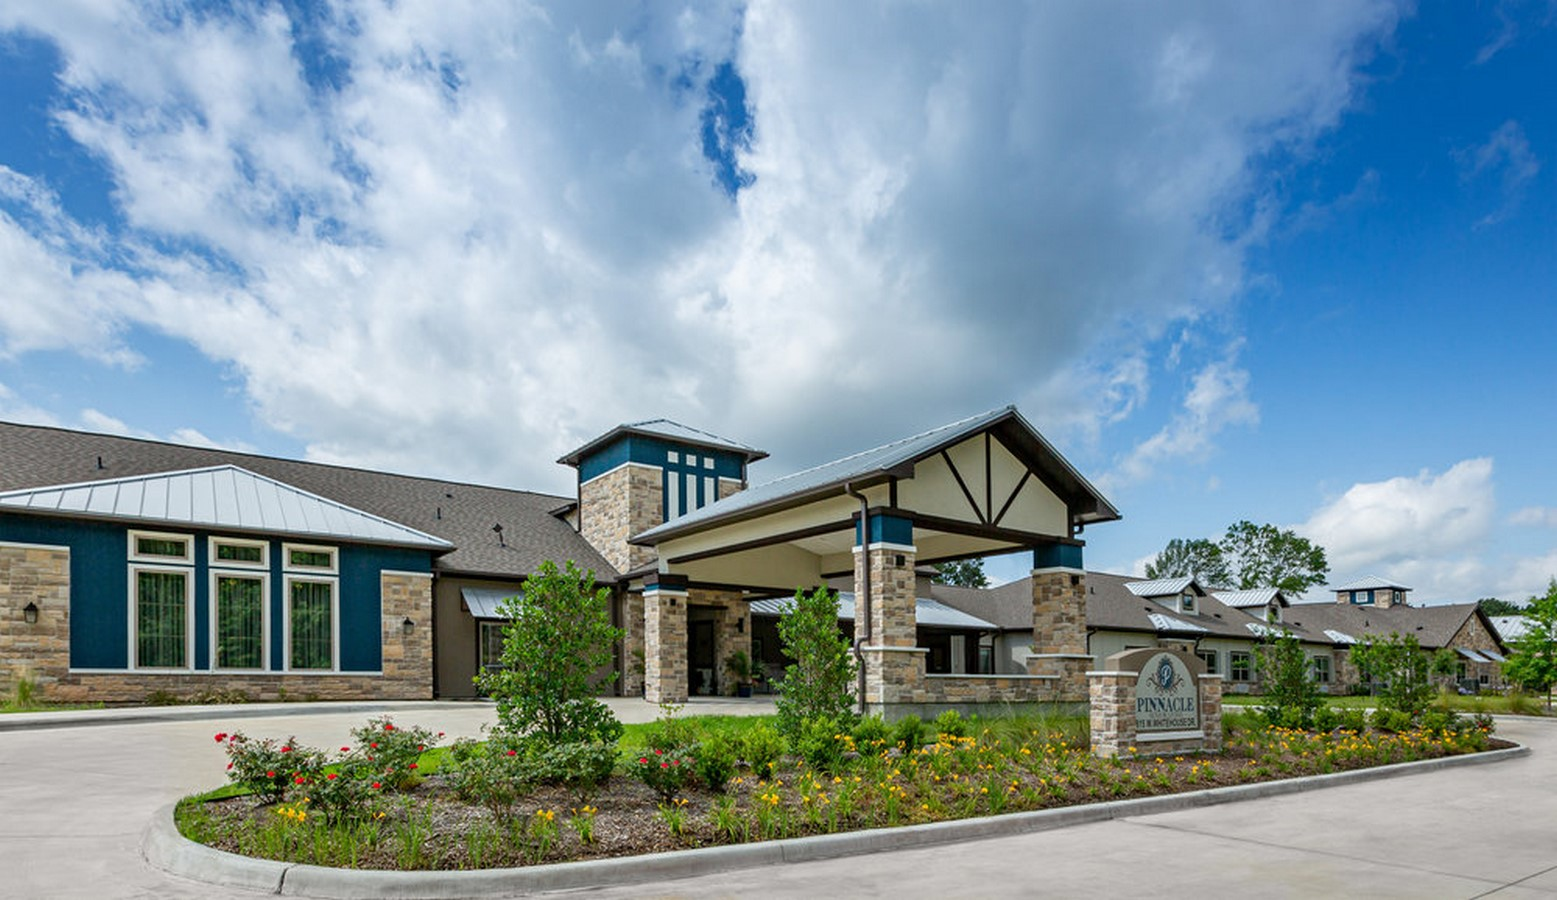 Architects in Fort Worth - Top 55 Architects in Fort Worth - Sheet44